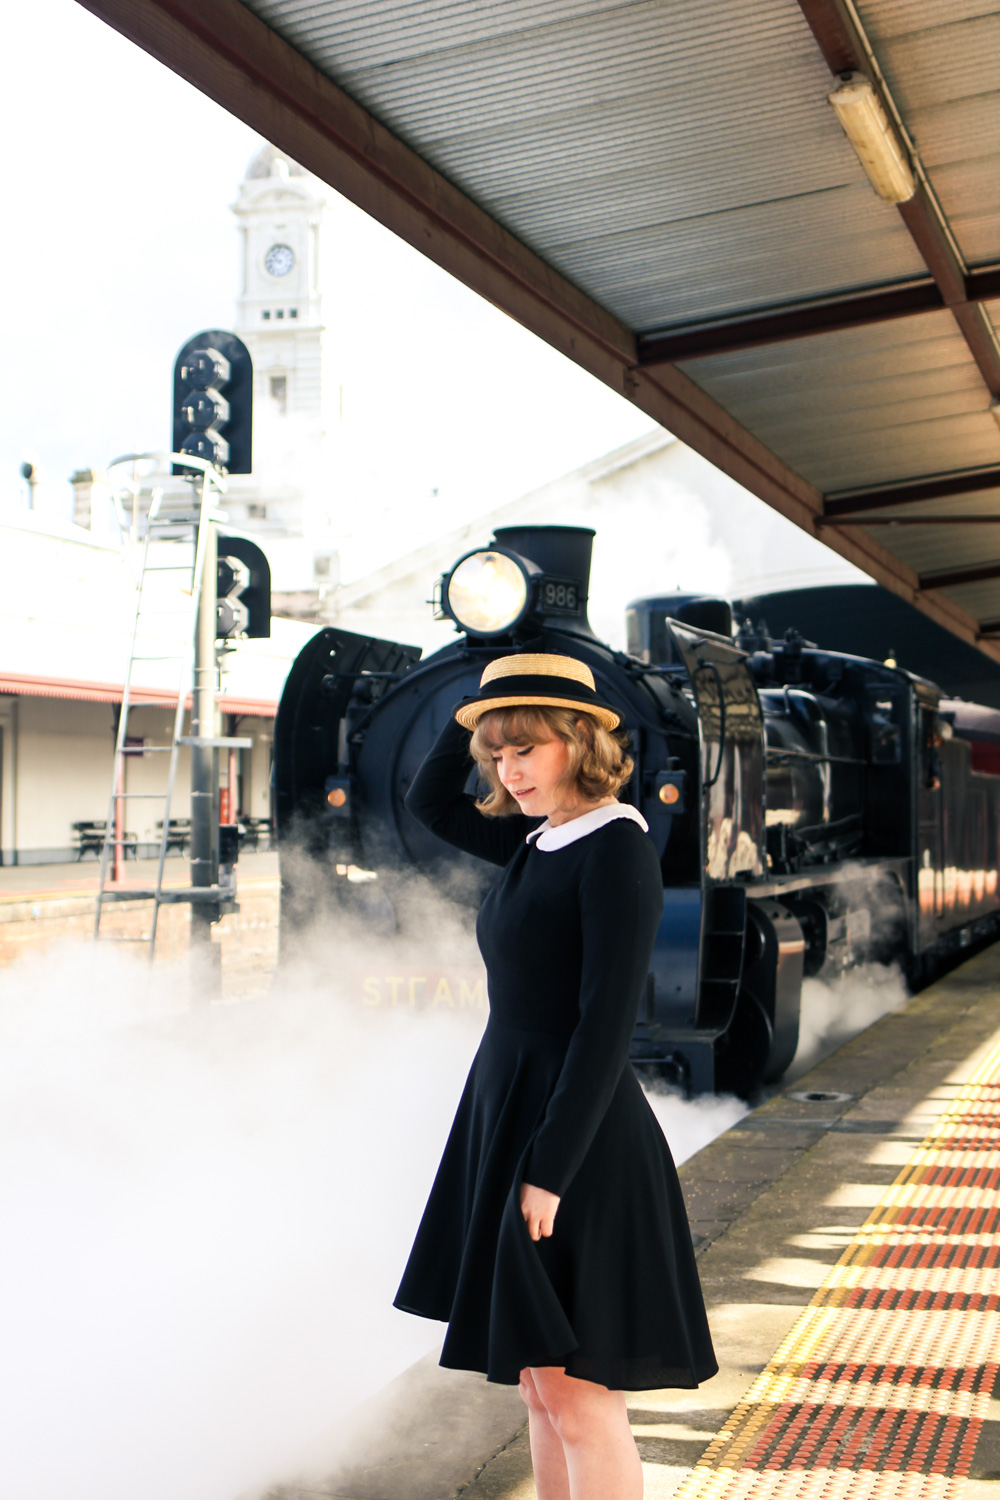 Liana of @findingfemme visit the steam train for Ballarat Heritage Weekend